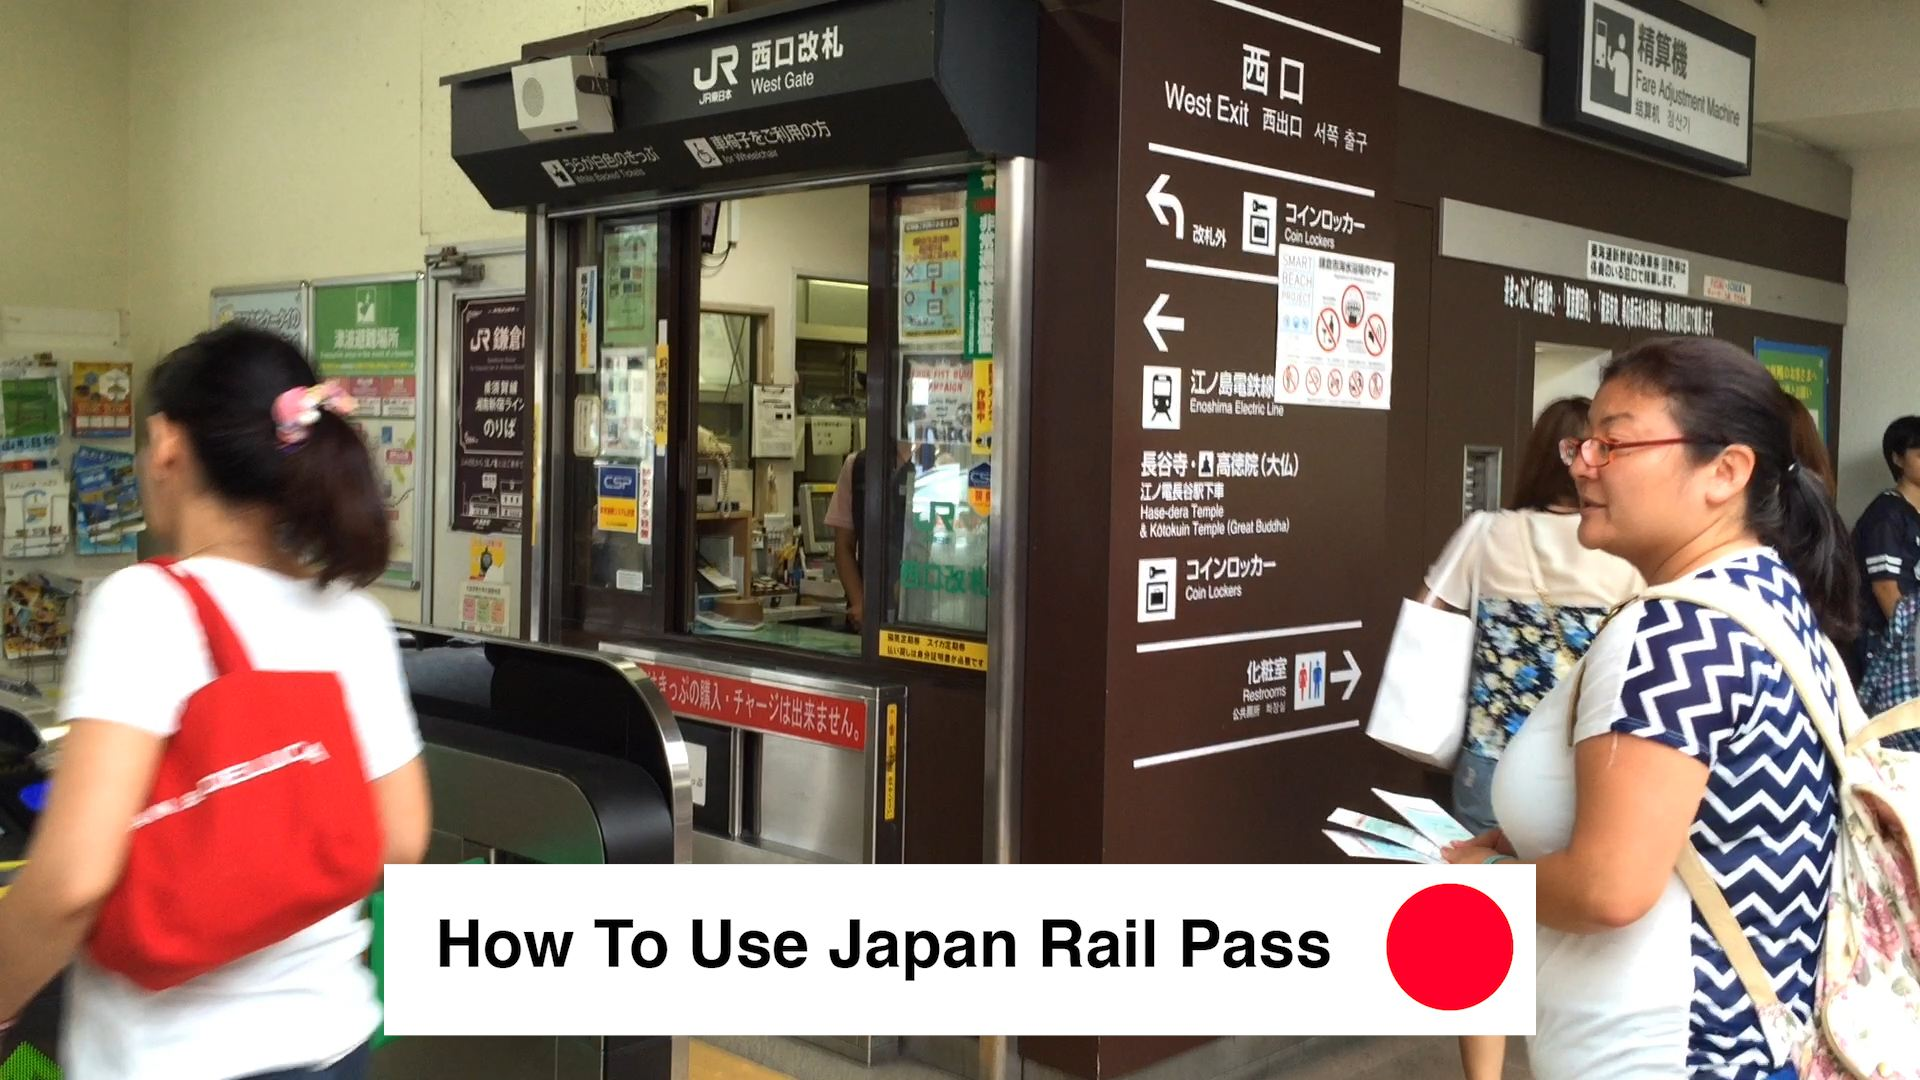 How To Use Japan Rail Pass - Where To Buy Japan Rail Pass How To Use JR Pass In Tokyo. JR Pass Price